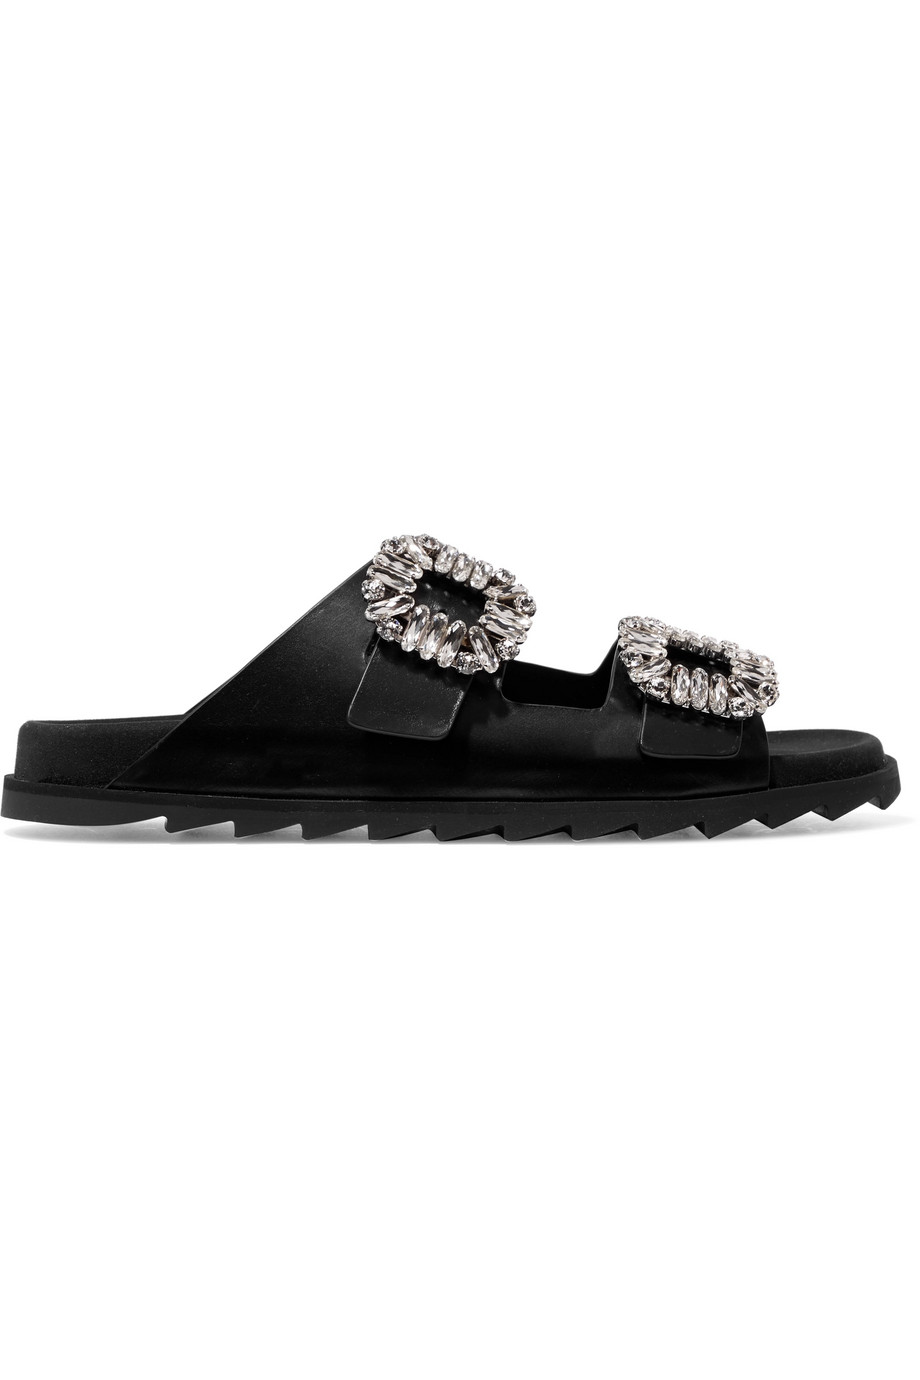 Roger Vivier Slidy Viv crystal-embellished leather slides